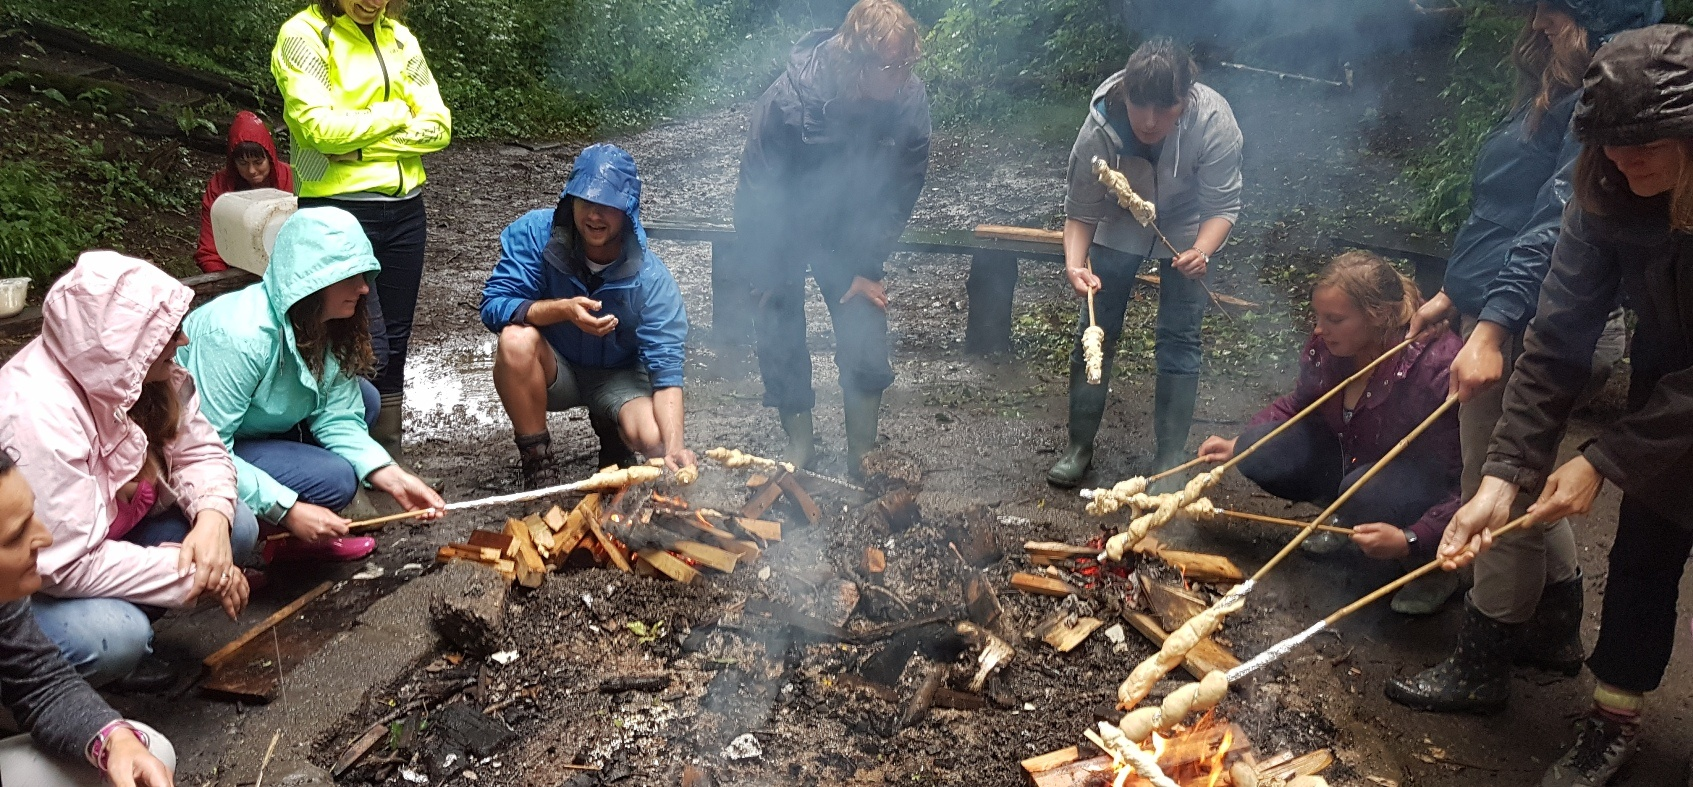 Bushcraft Survival Experience In Bristol